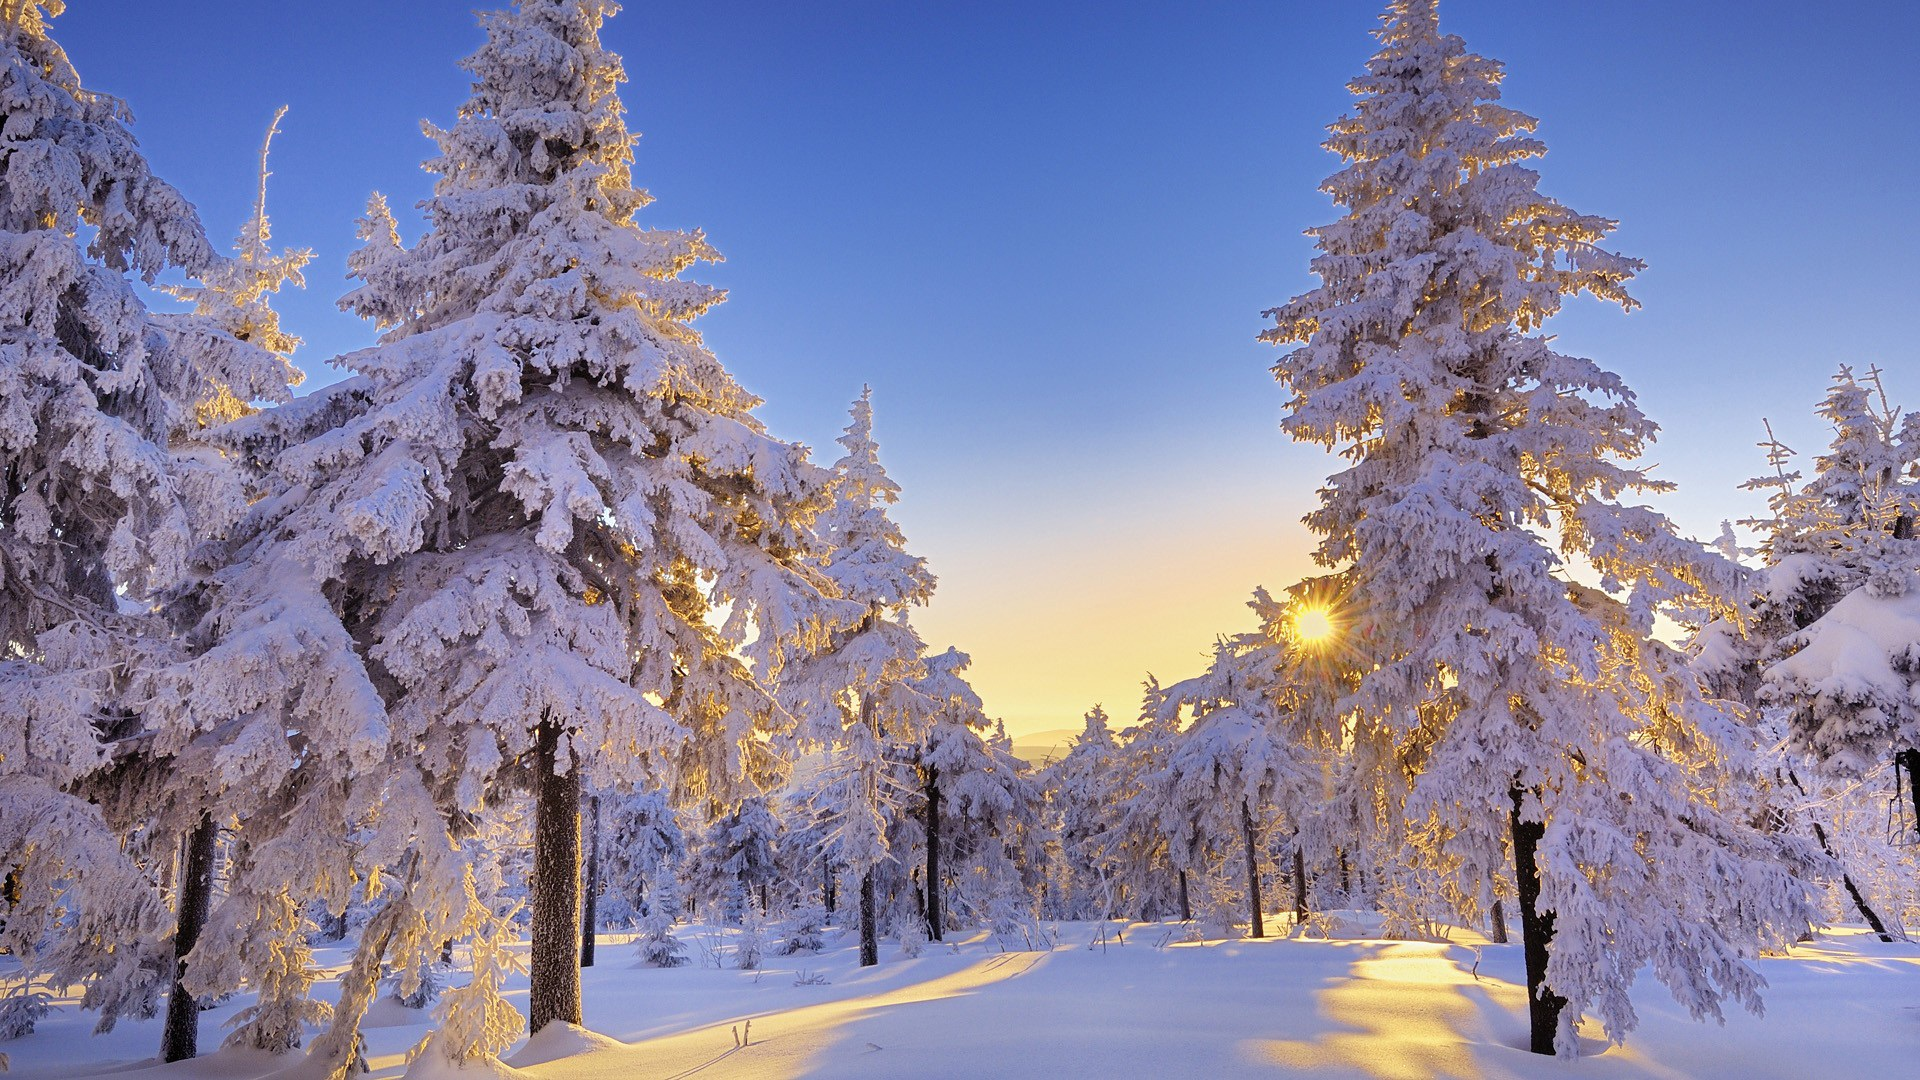 Winter Sun Wallpapers 1920x1080